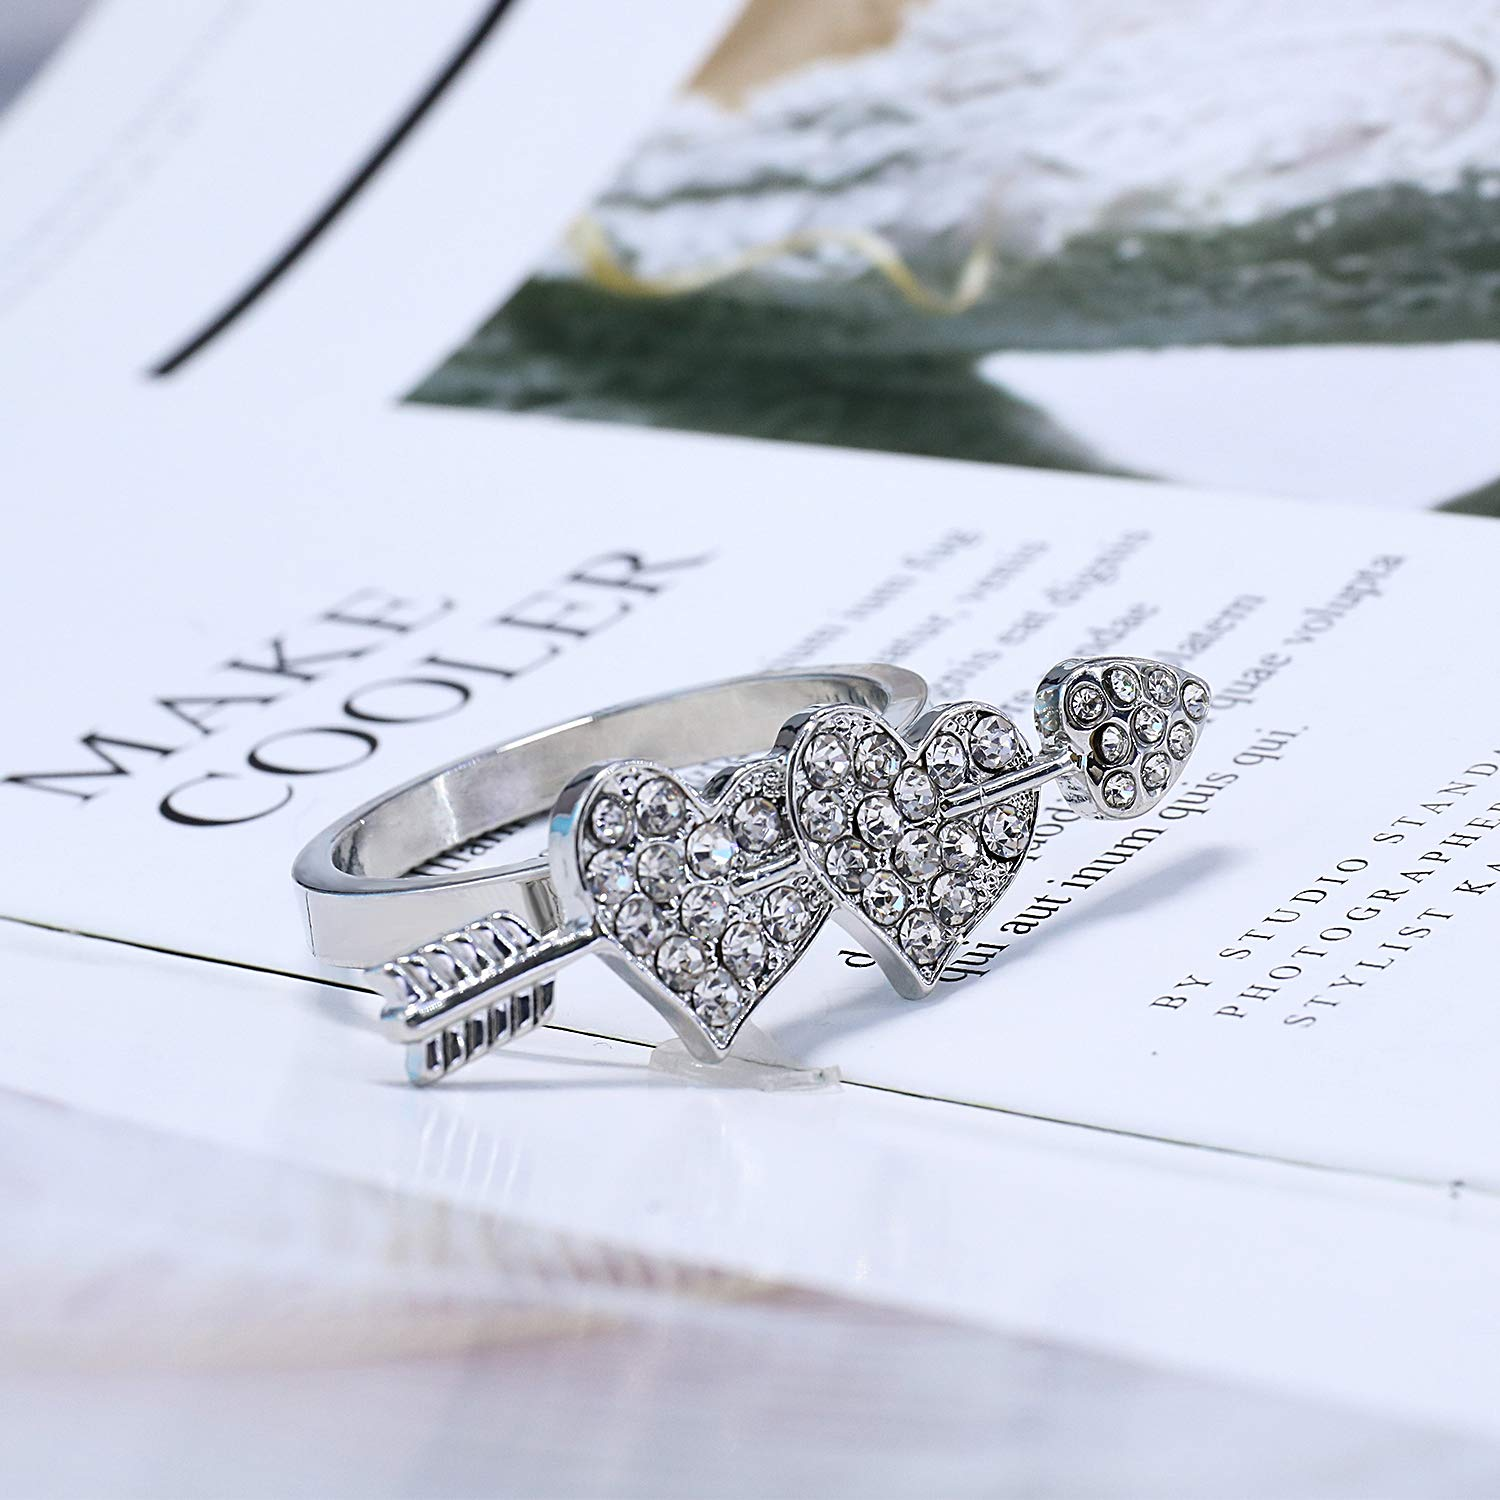 Wedding Napkin Rings Set 8pcs Holder Valentines Day Gift Banquet Dinner Decoration, Rhinestone Silver Sweet Heart